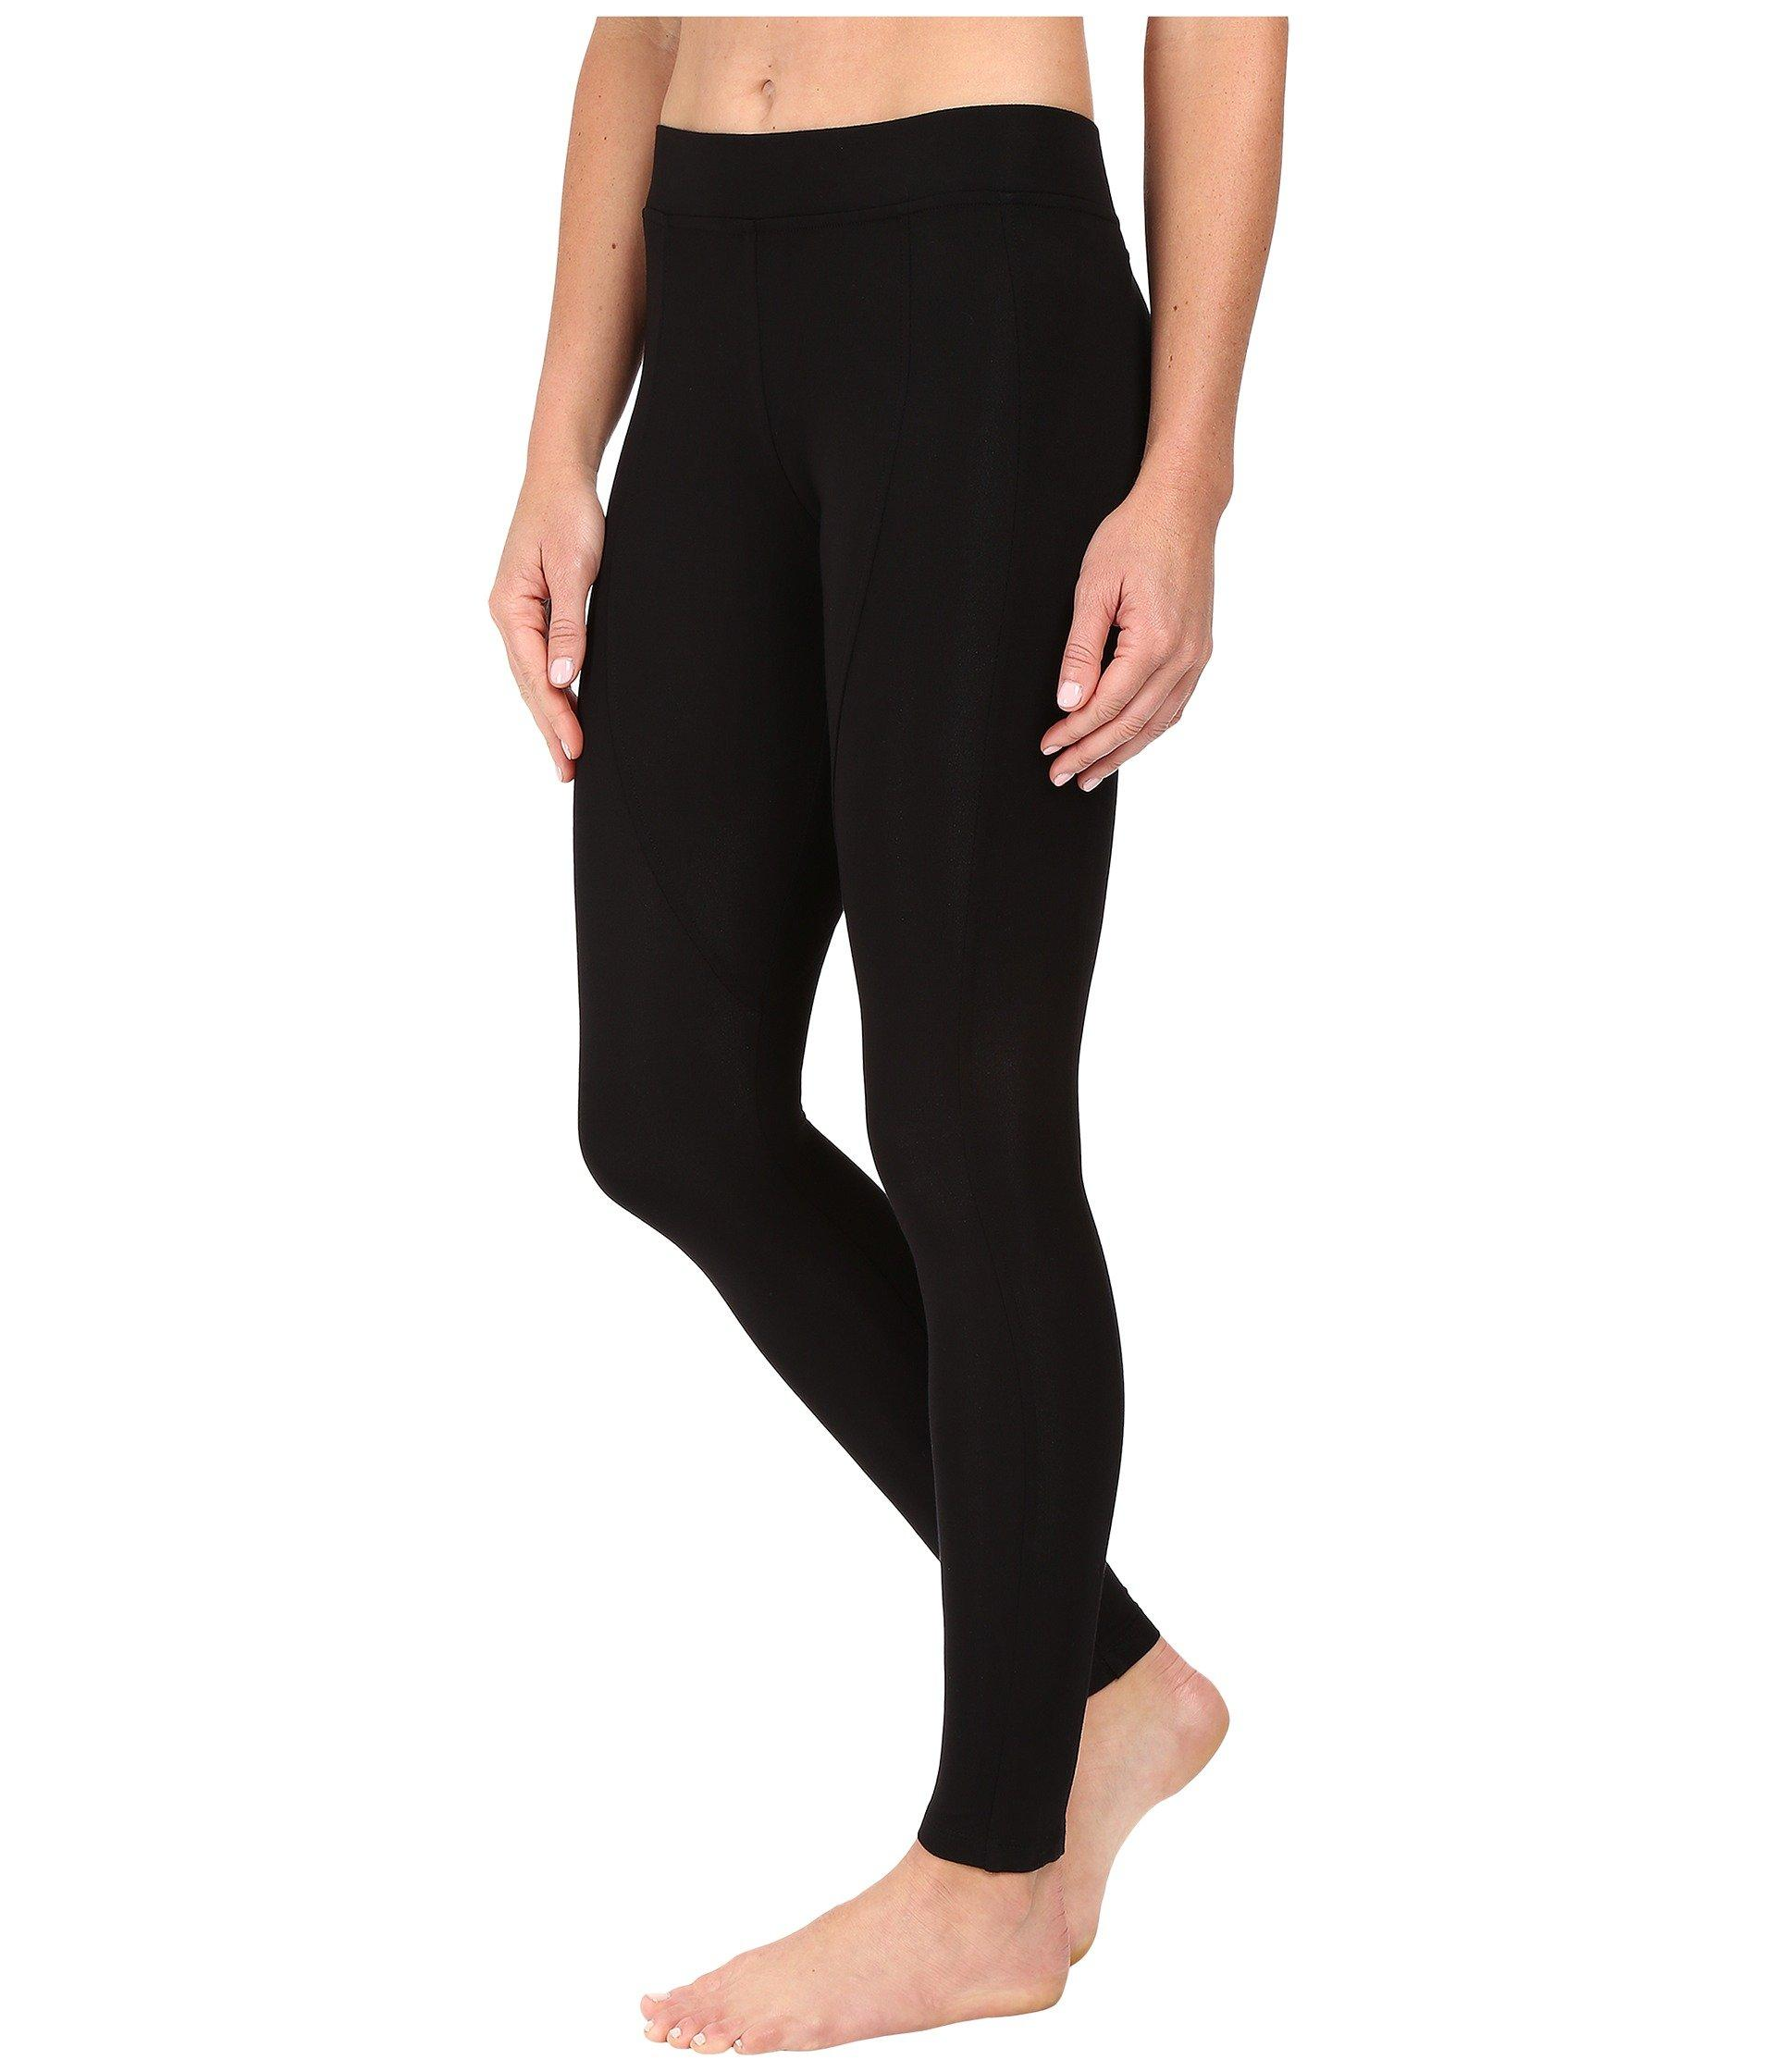 662f0d4a6b5f76 Lyst - UGG Watts Paneled Leggings in Black - Save 30%